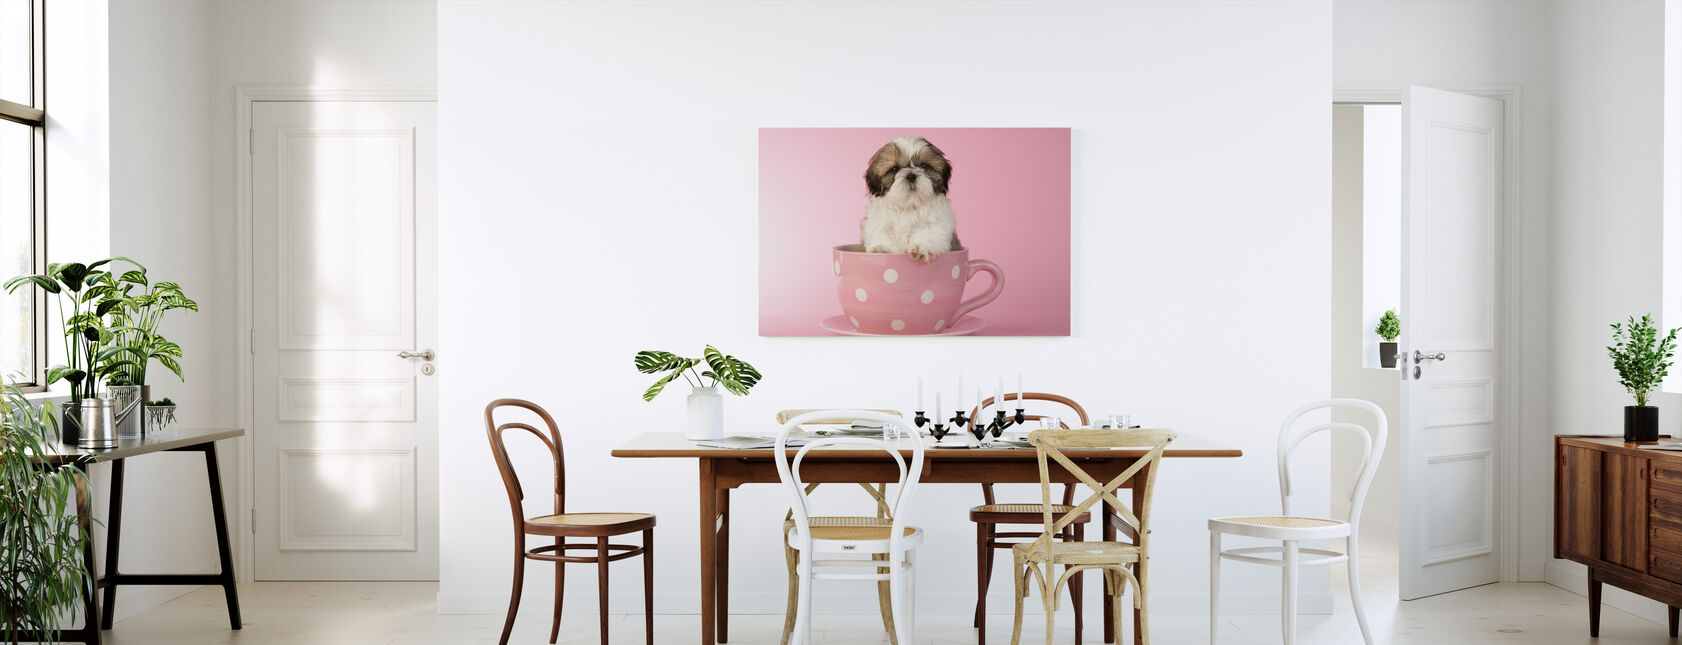 Dog in Cup - Canvas print - Kitchen